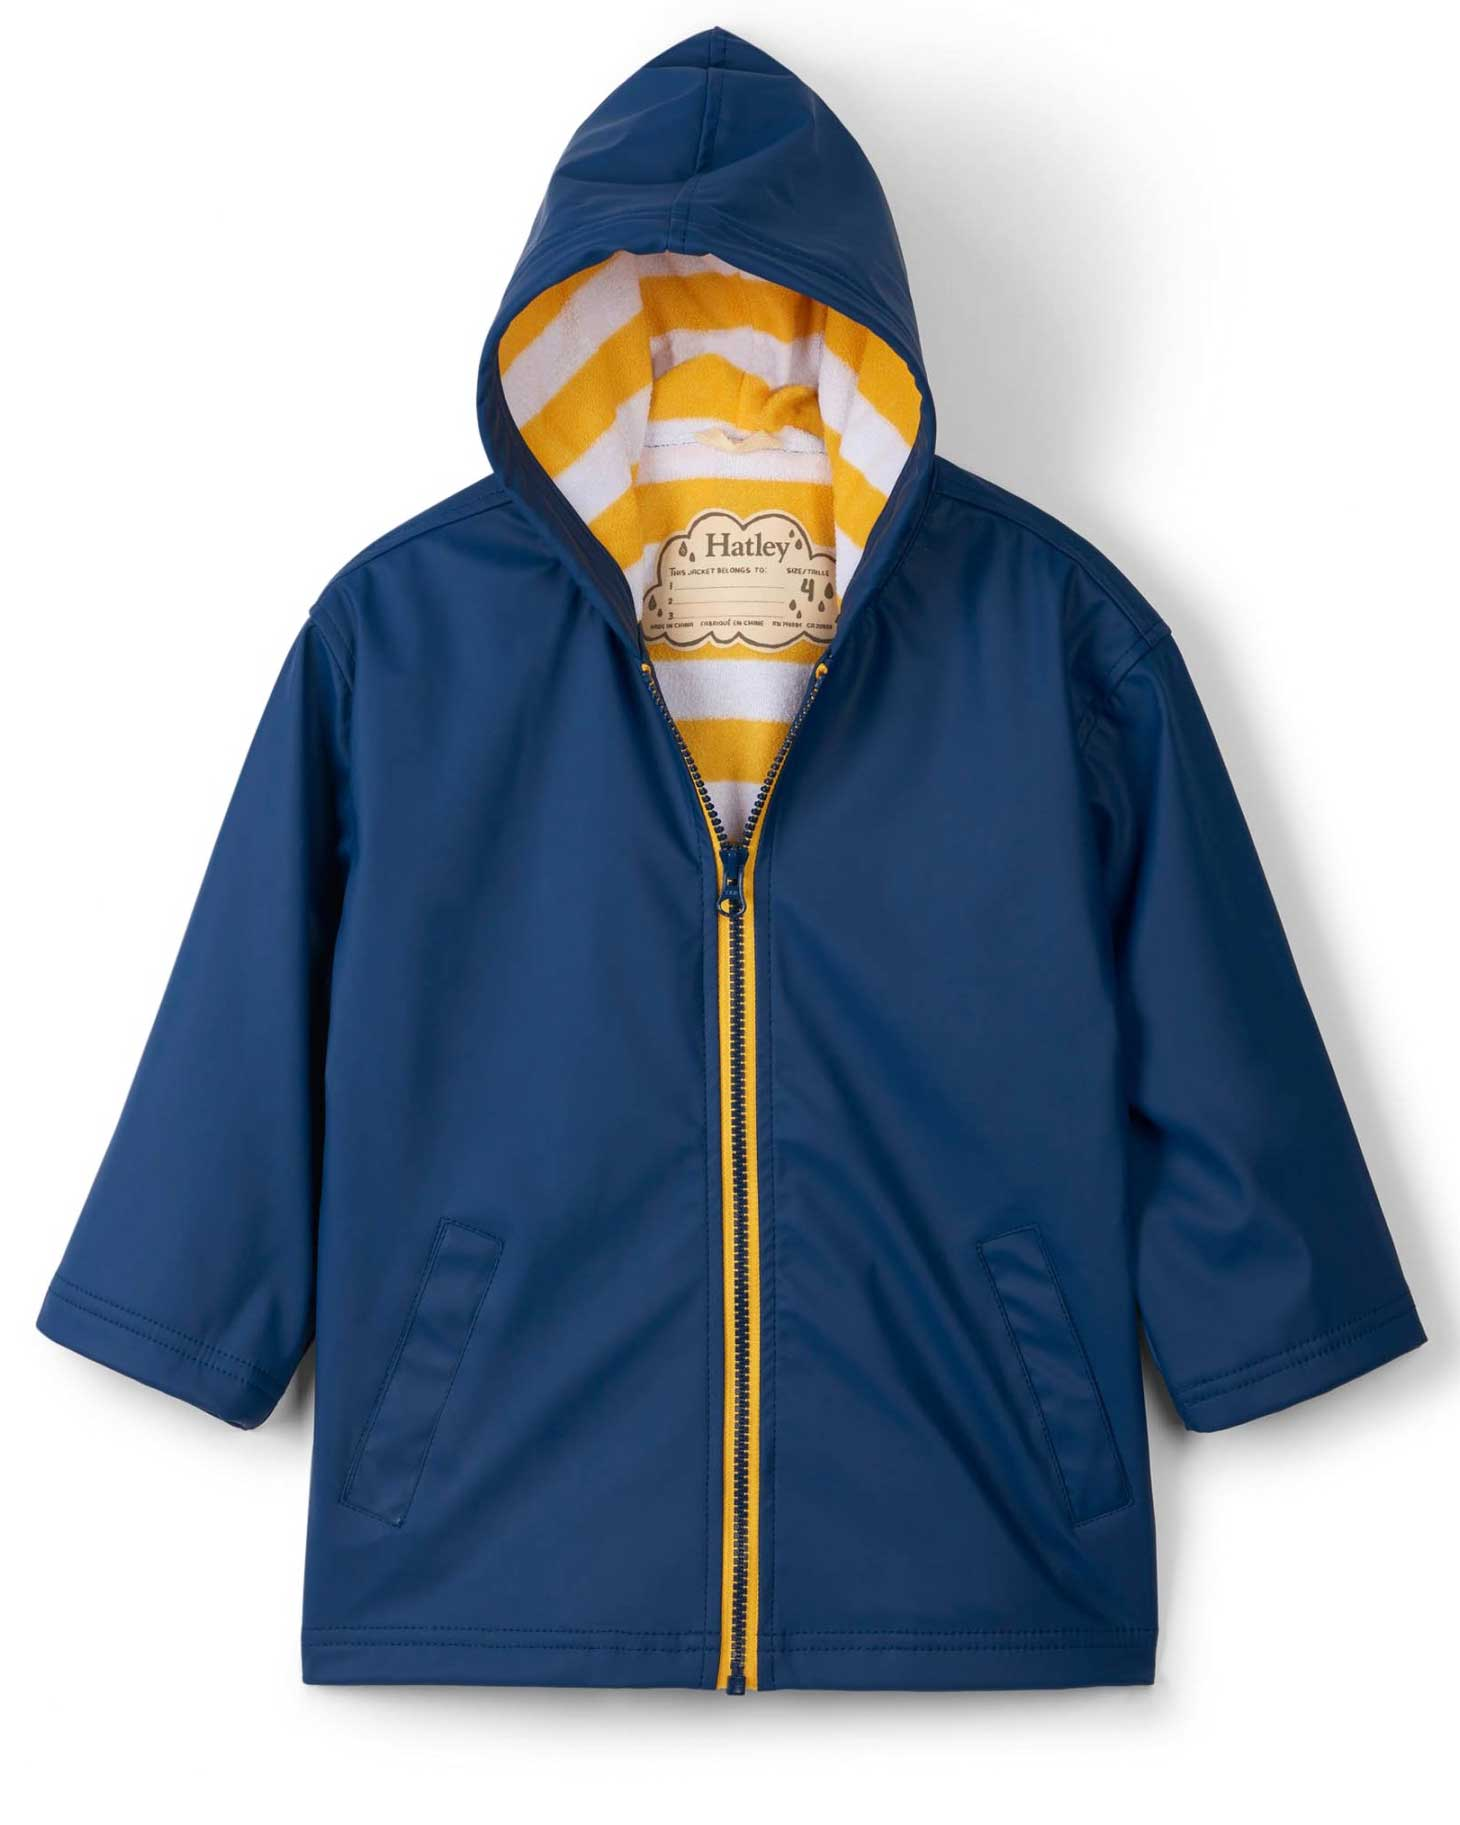 Navy With Yellow Splash Jacket